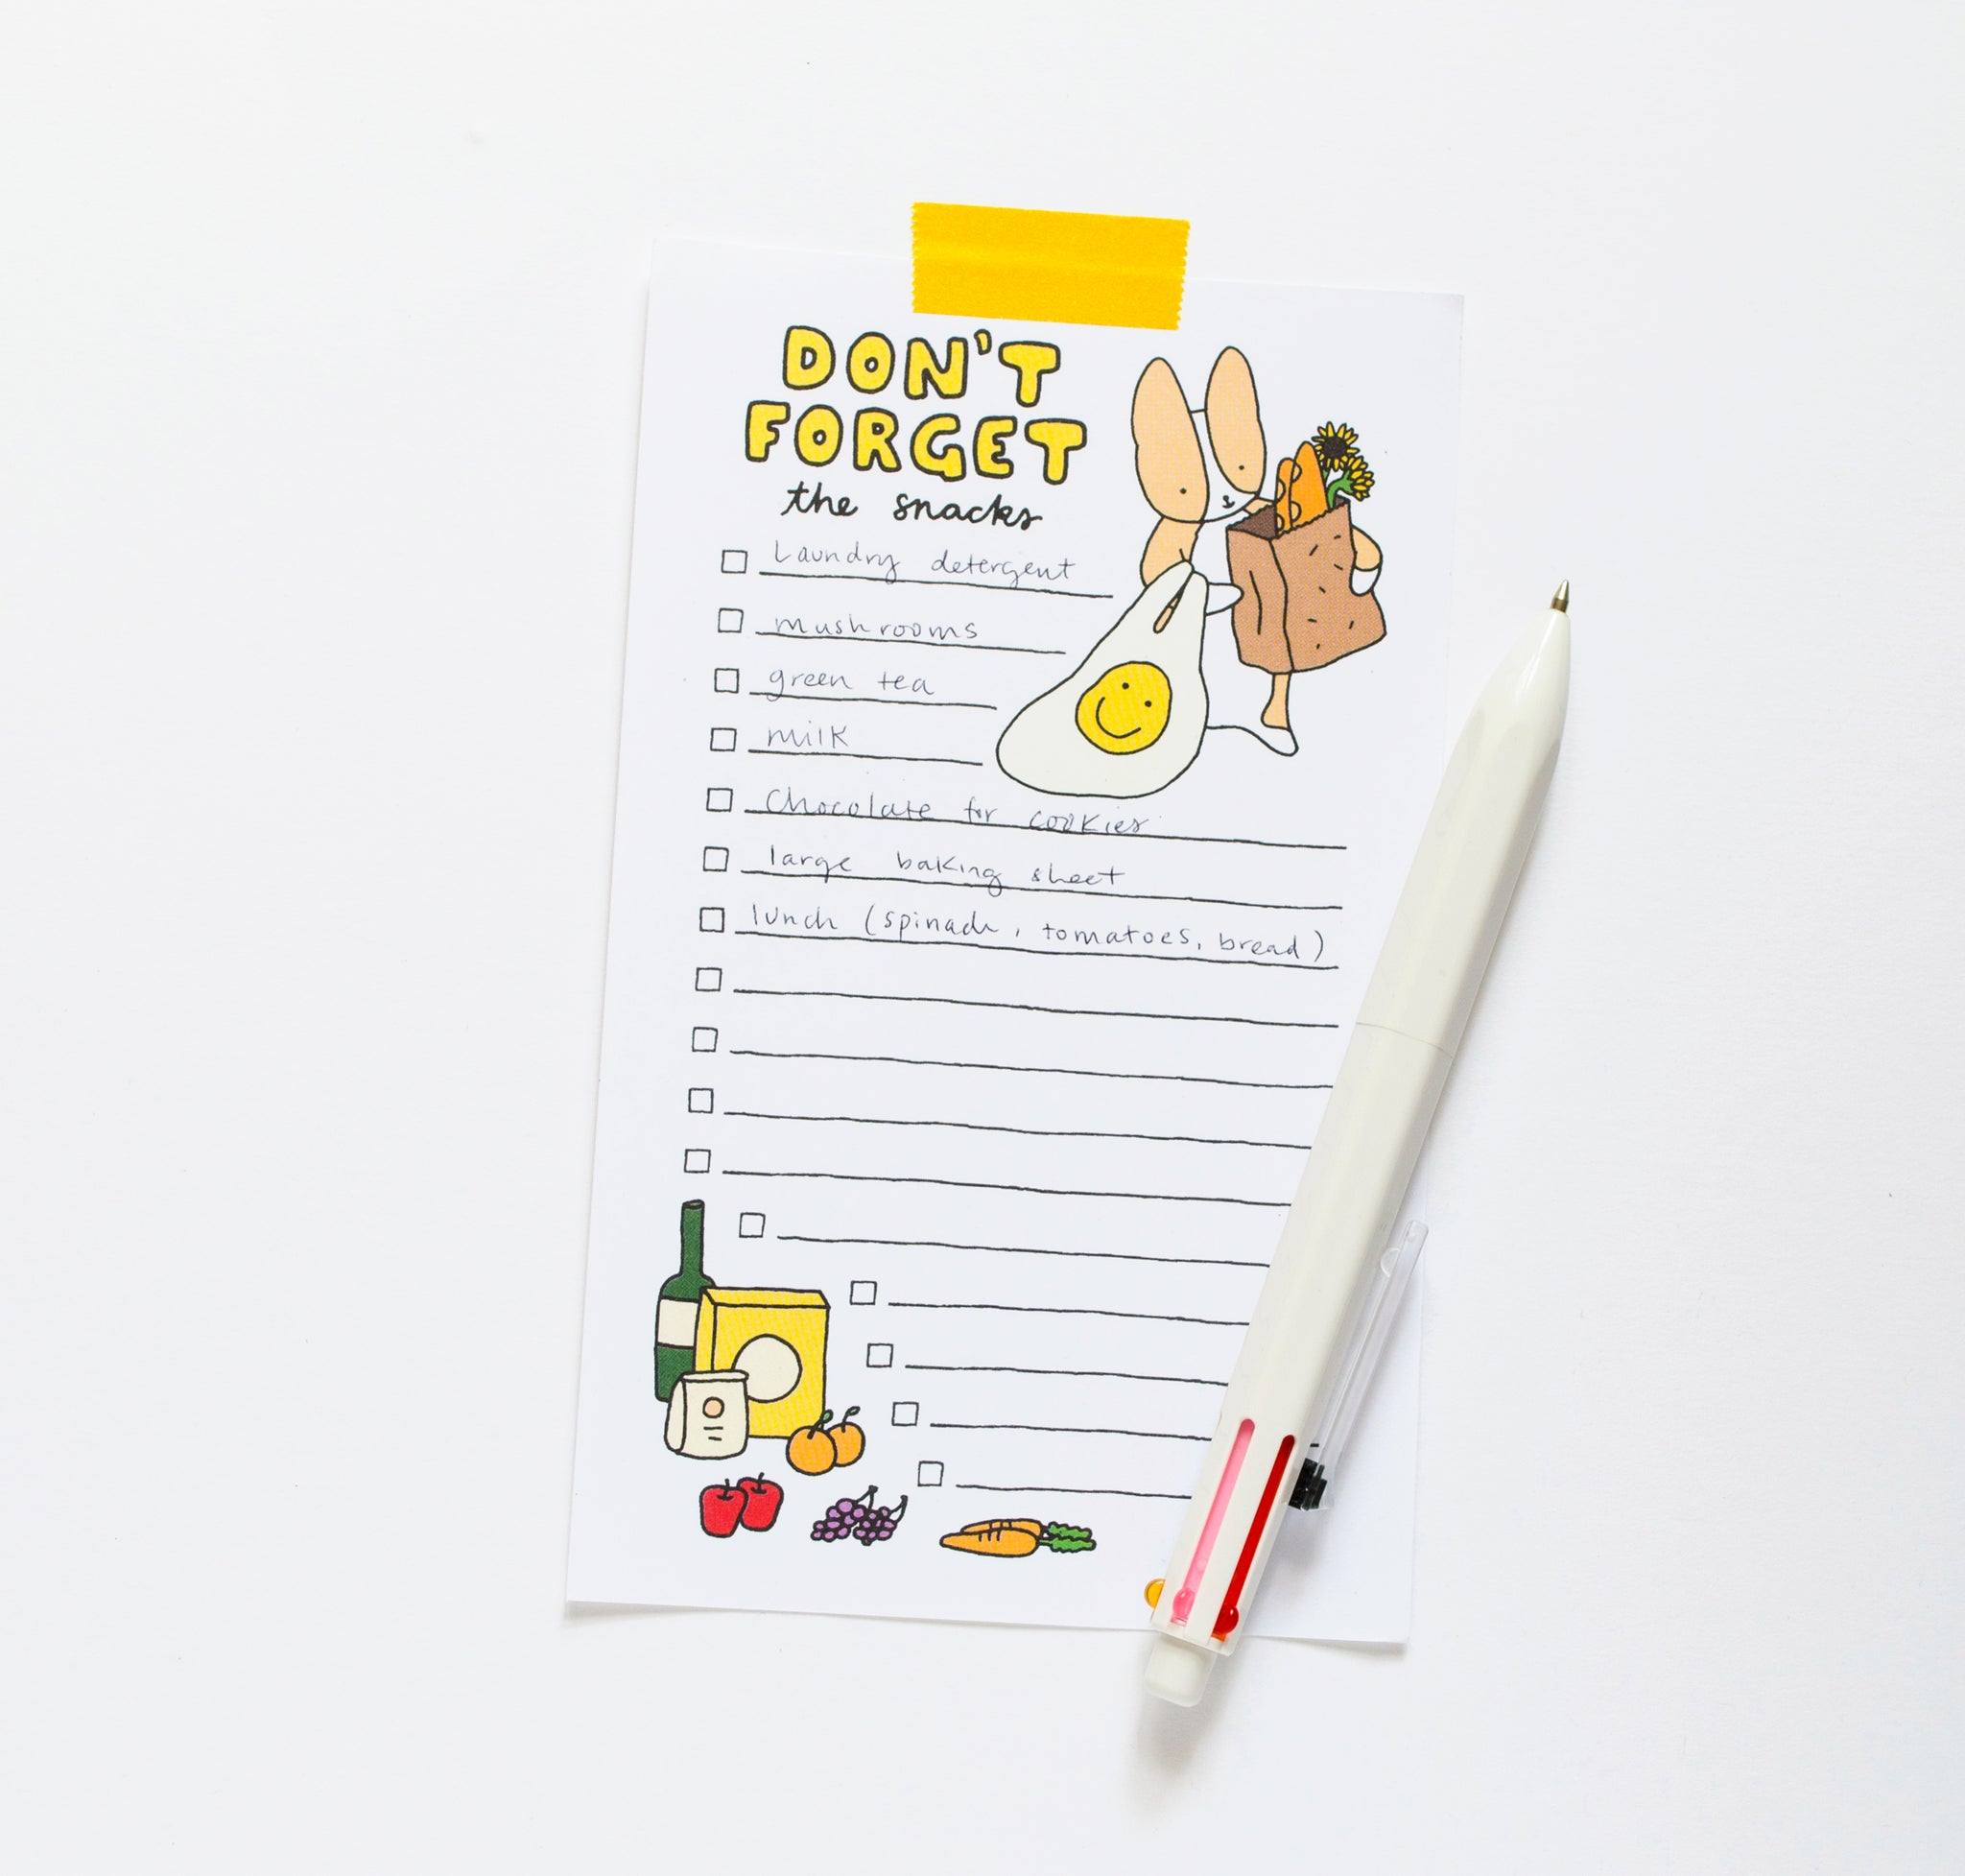 don't forget snacks market notepad with corgi holding grocery bags and groceries on the bottom, styled with pen